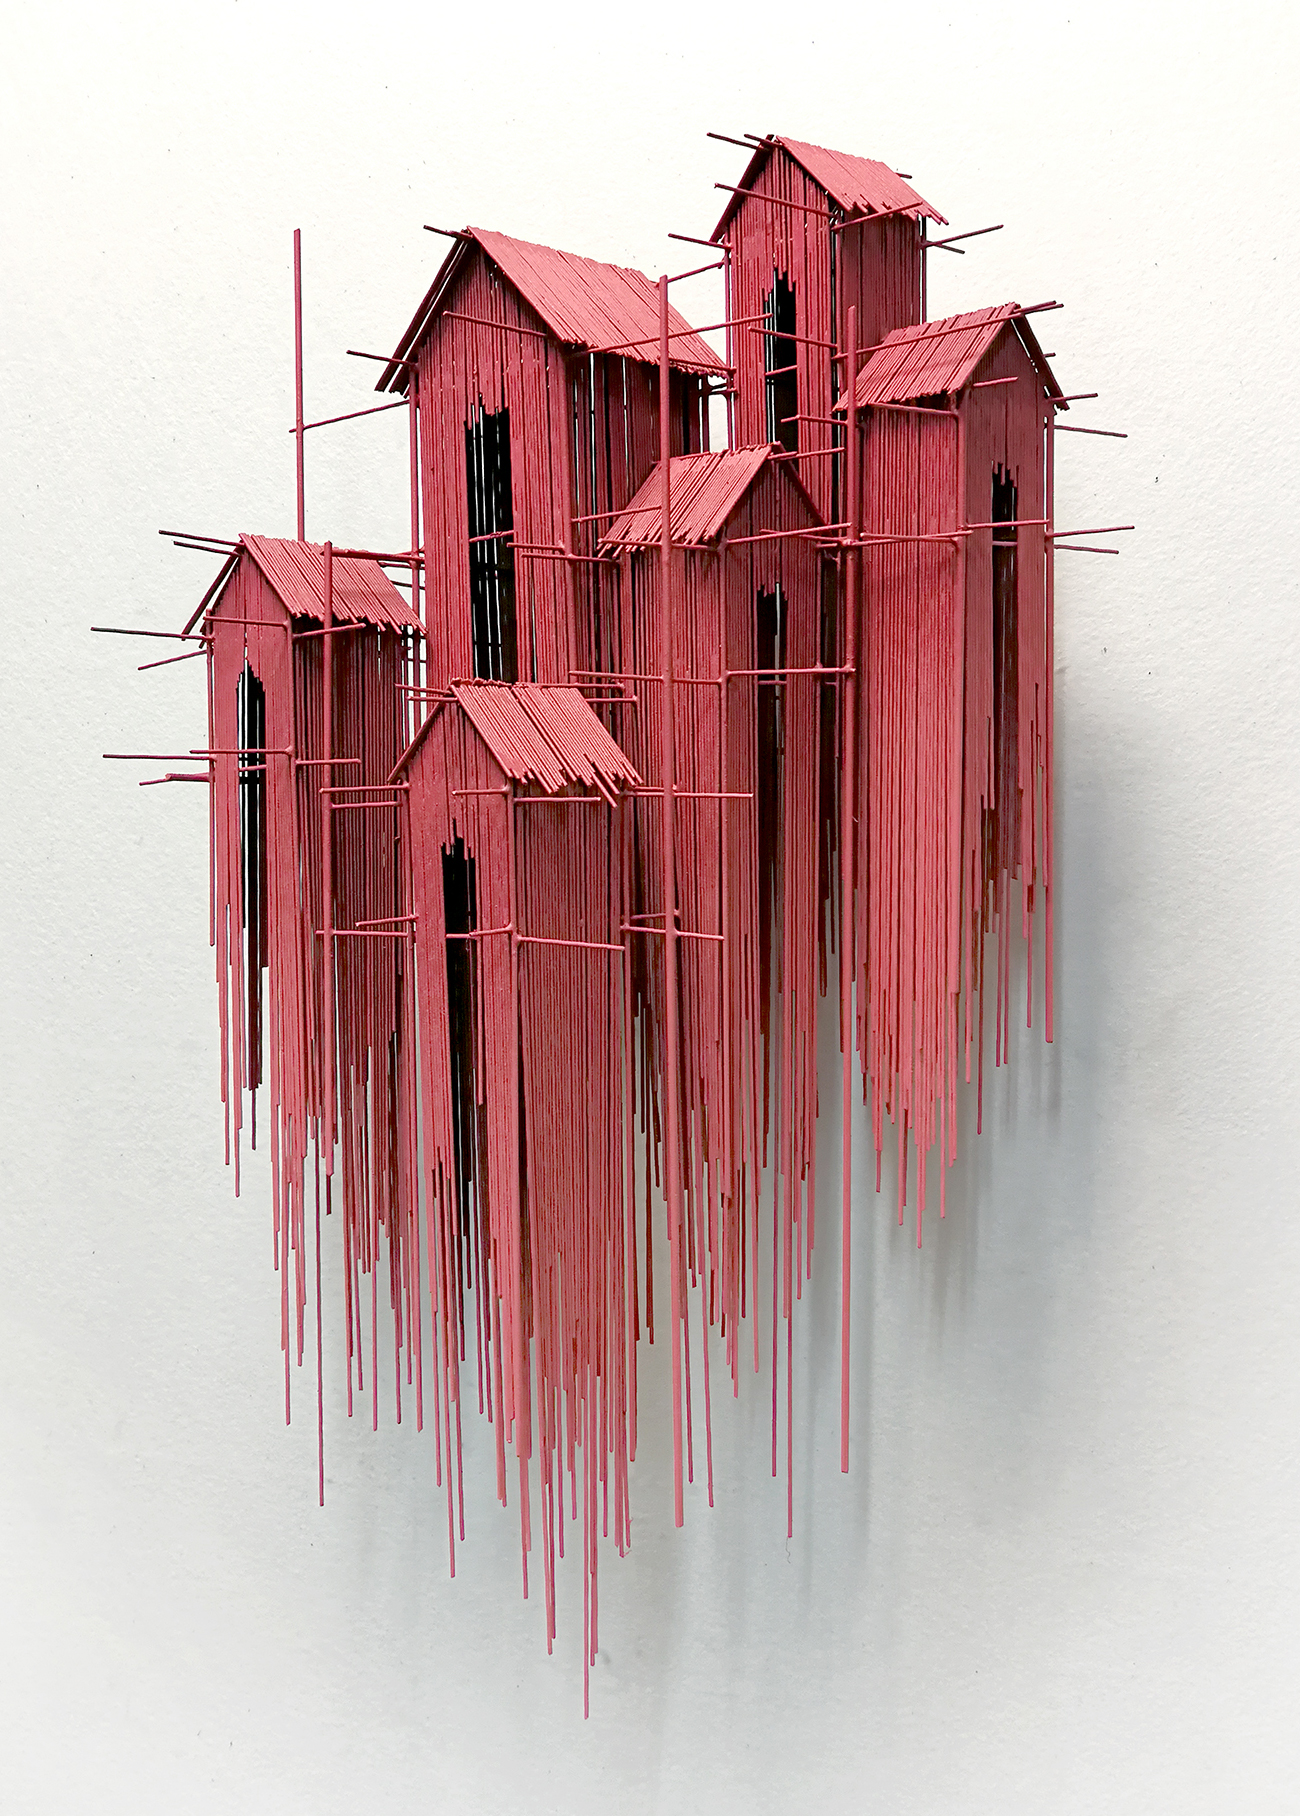 New Architectural Sculptures by David Moreno Appear As Three Dimensional Drawings (8 pics)